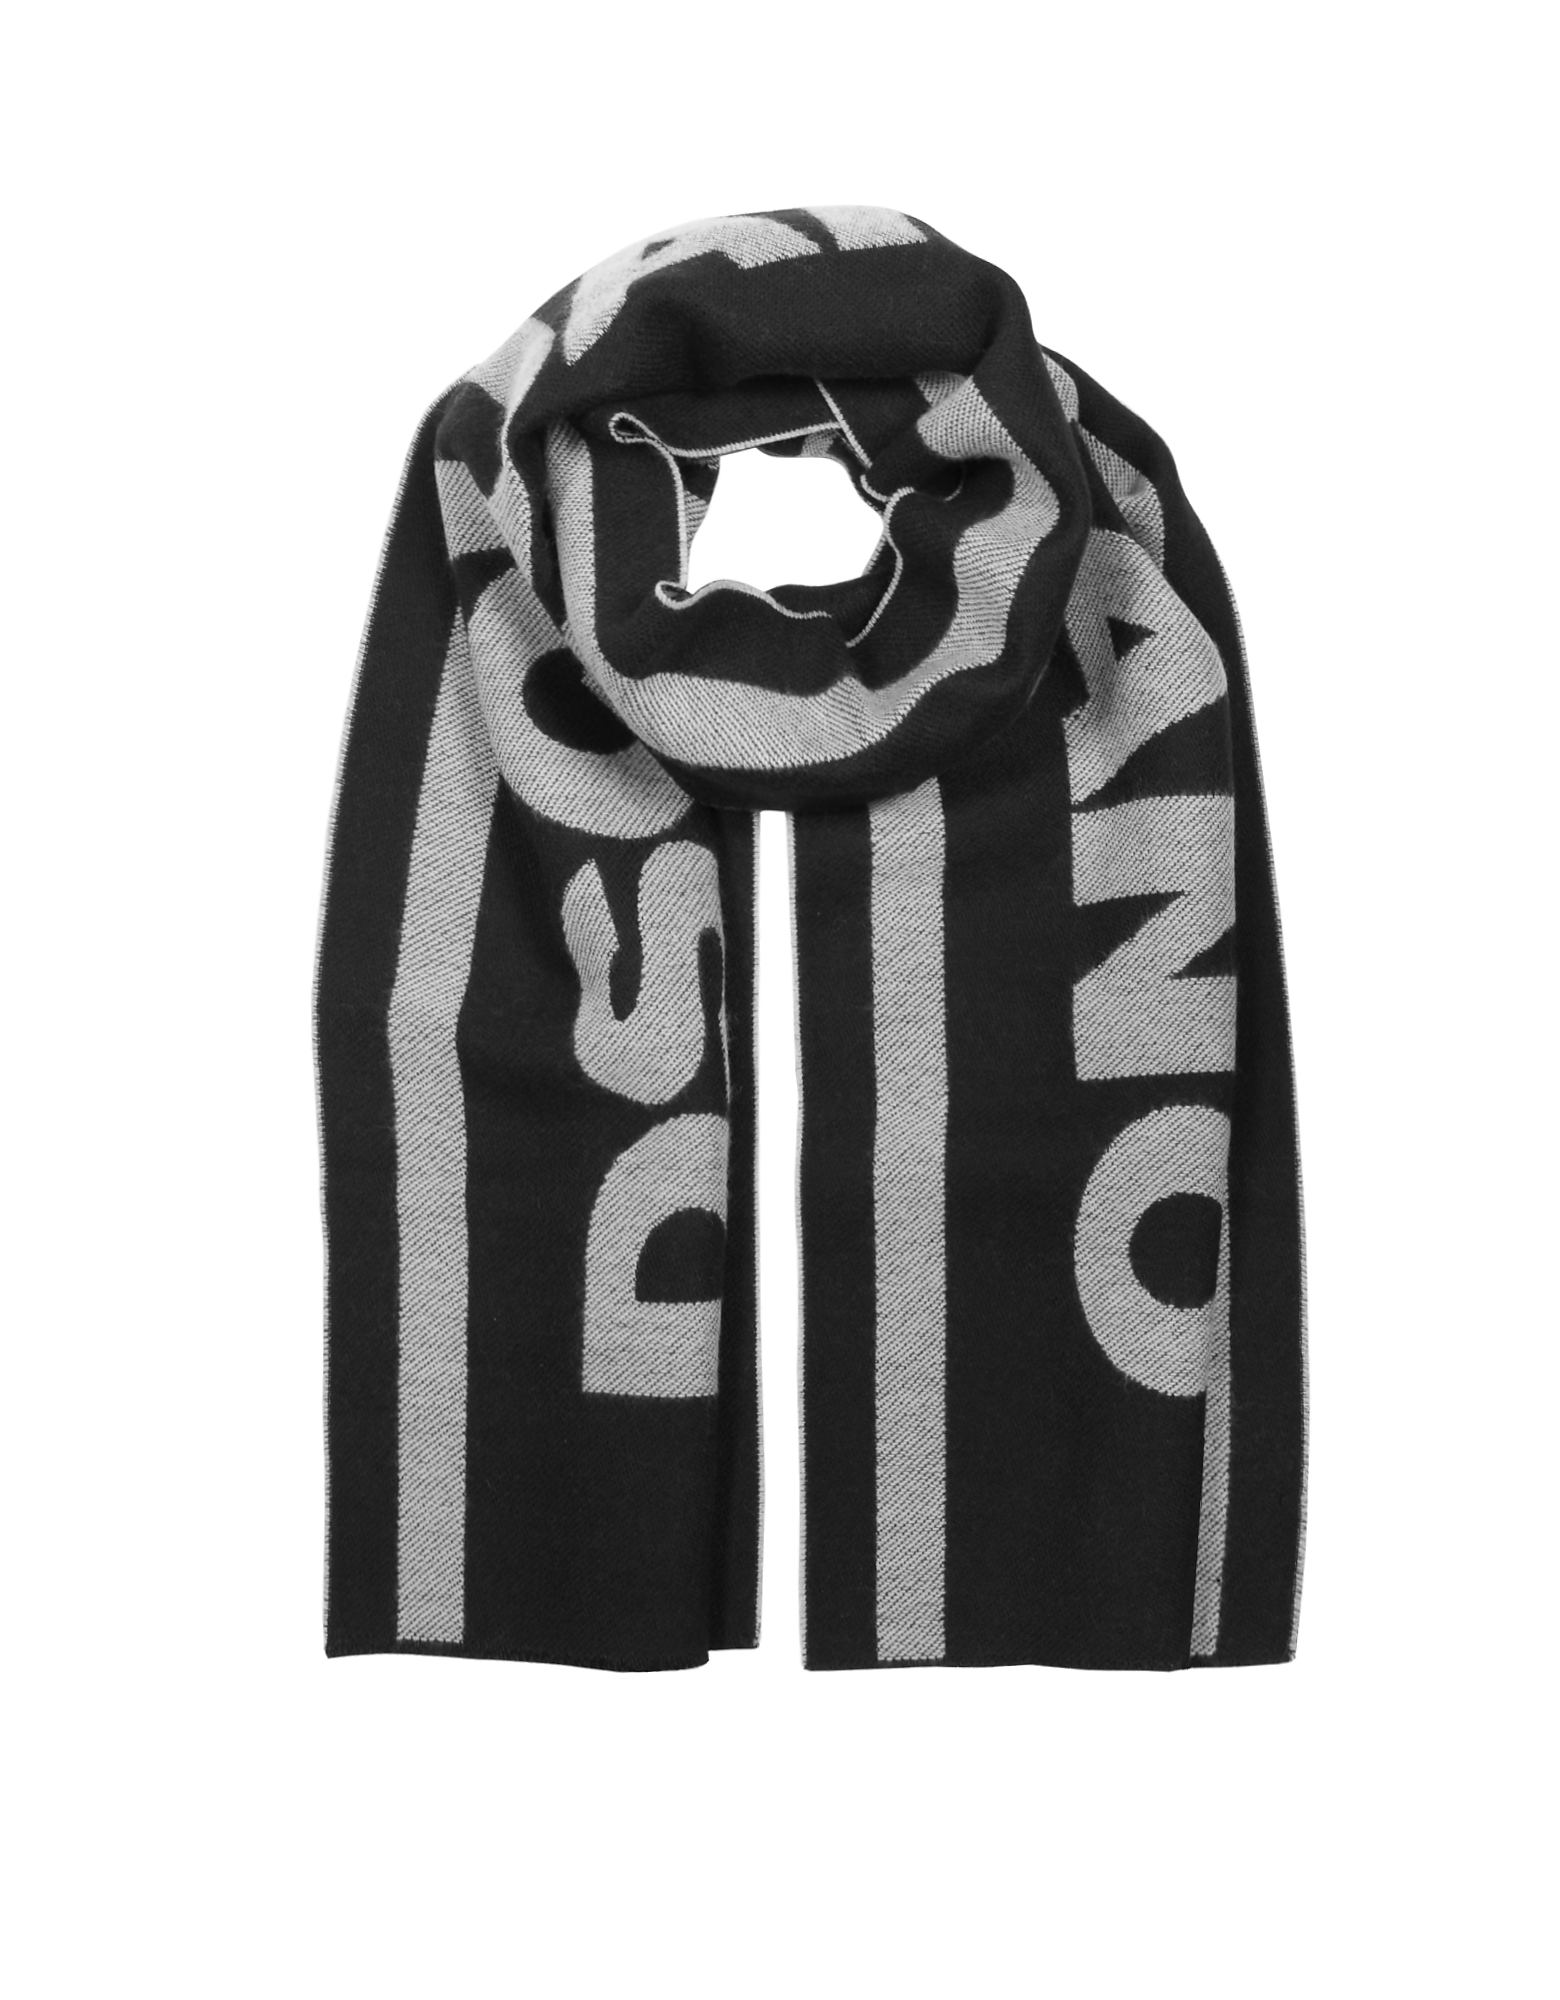 Signature Black and White Wool Blend Scarf